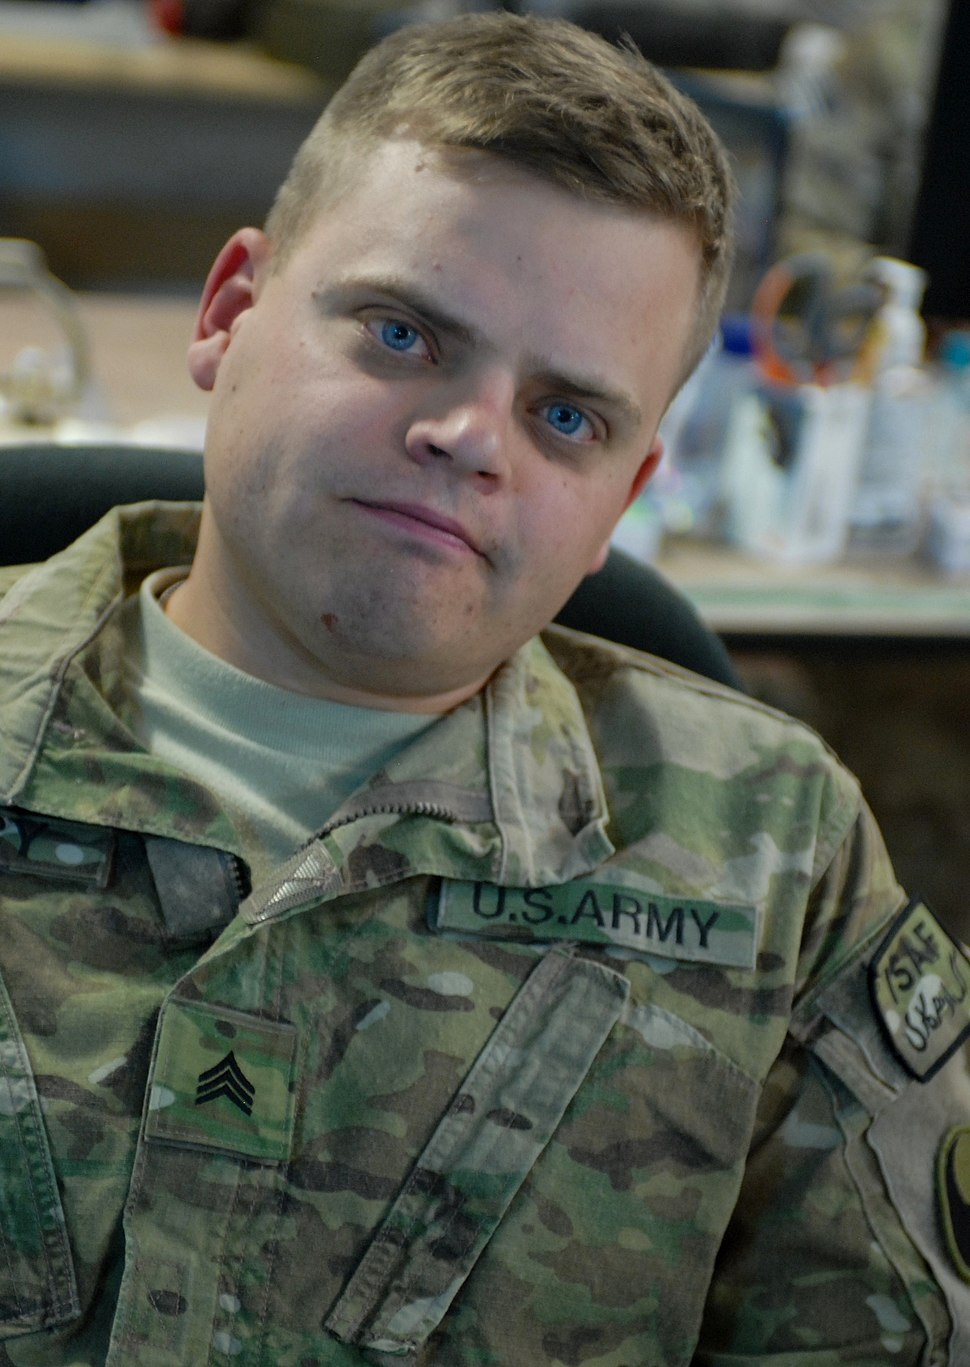 SGT Matthew Barry, USA